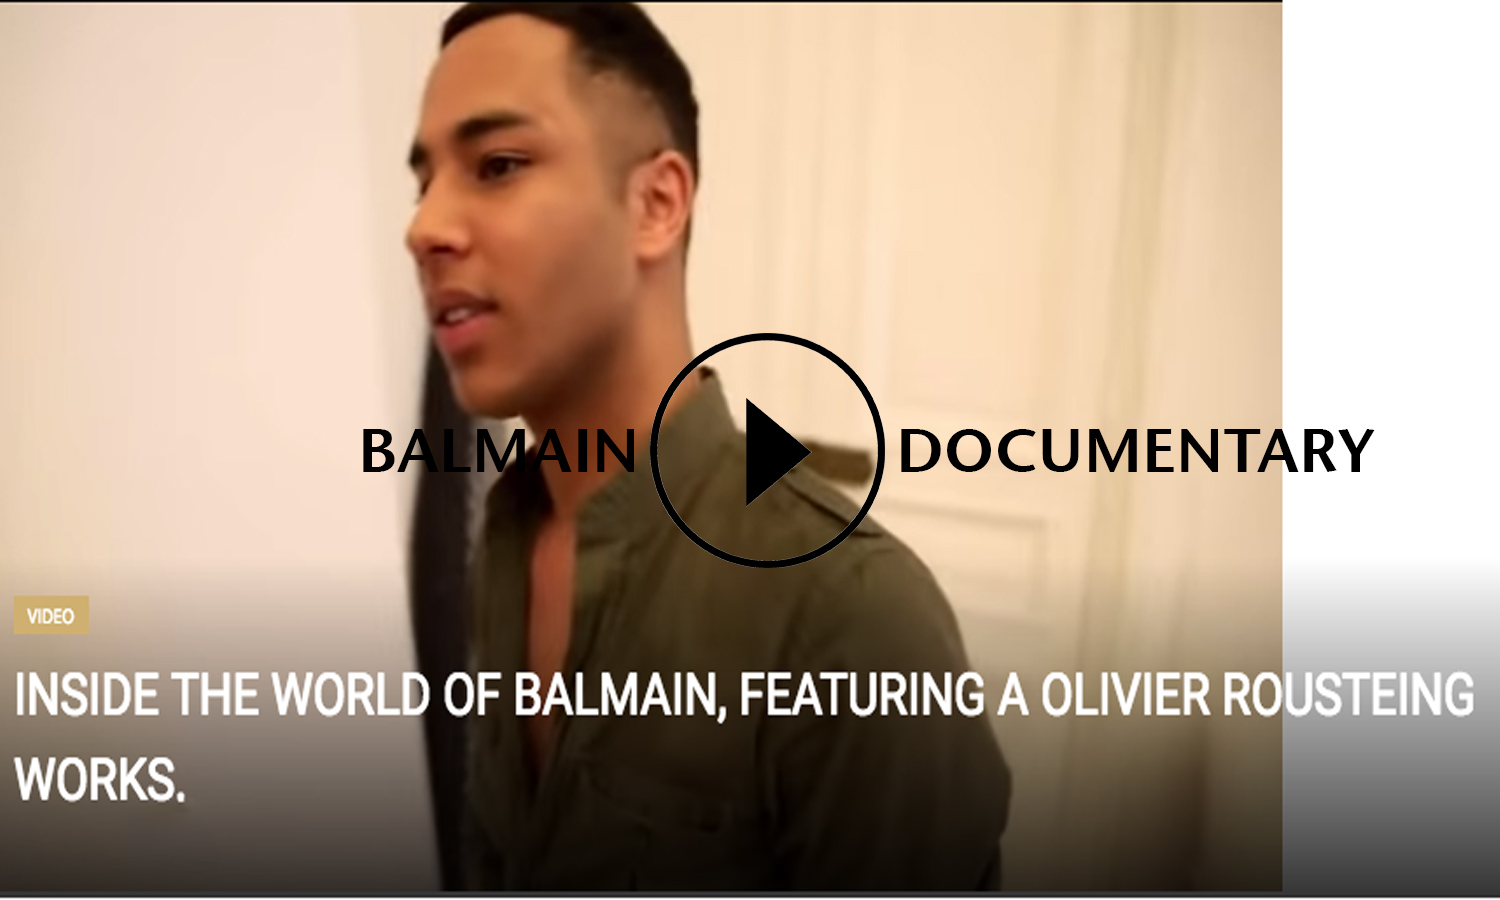 AFRICAN FASHION STYLE MAGAZINE - Inside-the-world-of-Balmain,-featuring-a-Olivier-Rousteing-works - BANGUMI PRODUCTION - A FILM BY LOIC PRIGENT -Media Partner DN MAG, DN AFRICA -STUDIO 24 NIGERIA - STUDIO 24 INTERNATIONAL